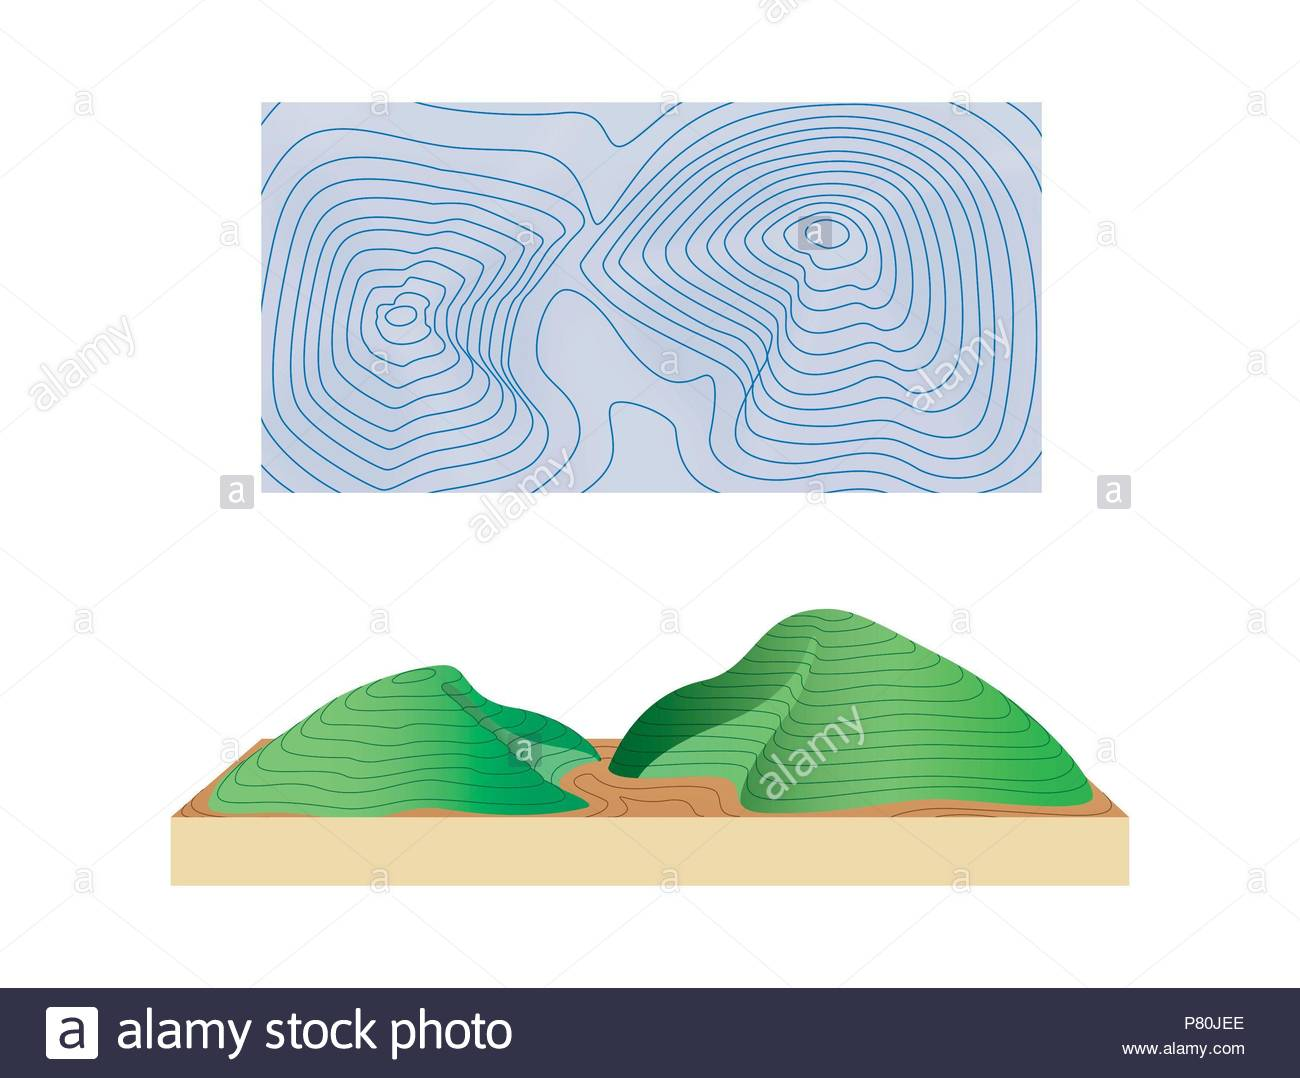 Relief Representation On A Topographic Map Stock Photo 211456182